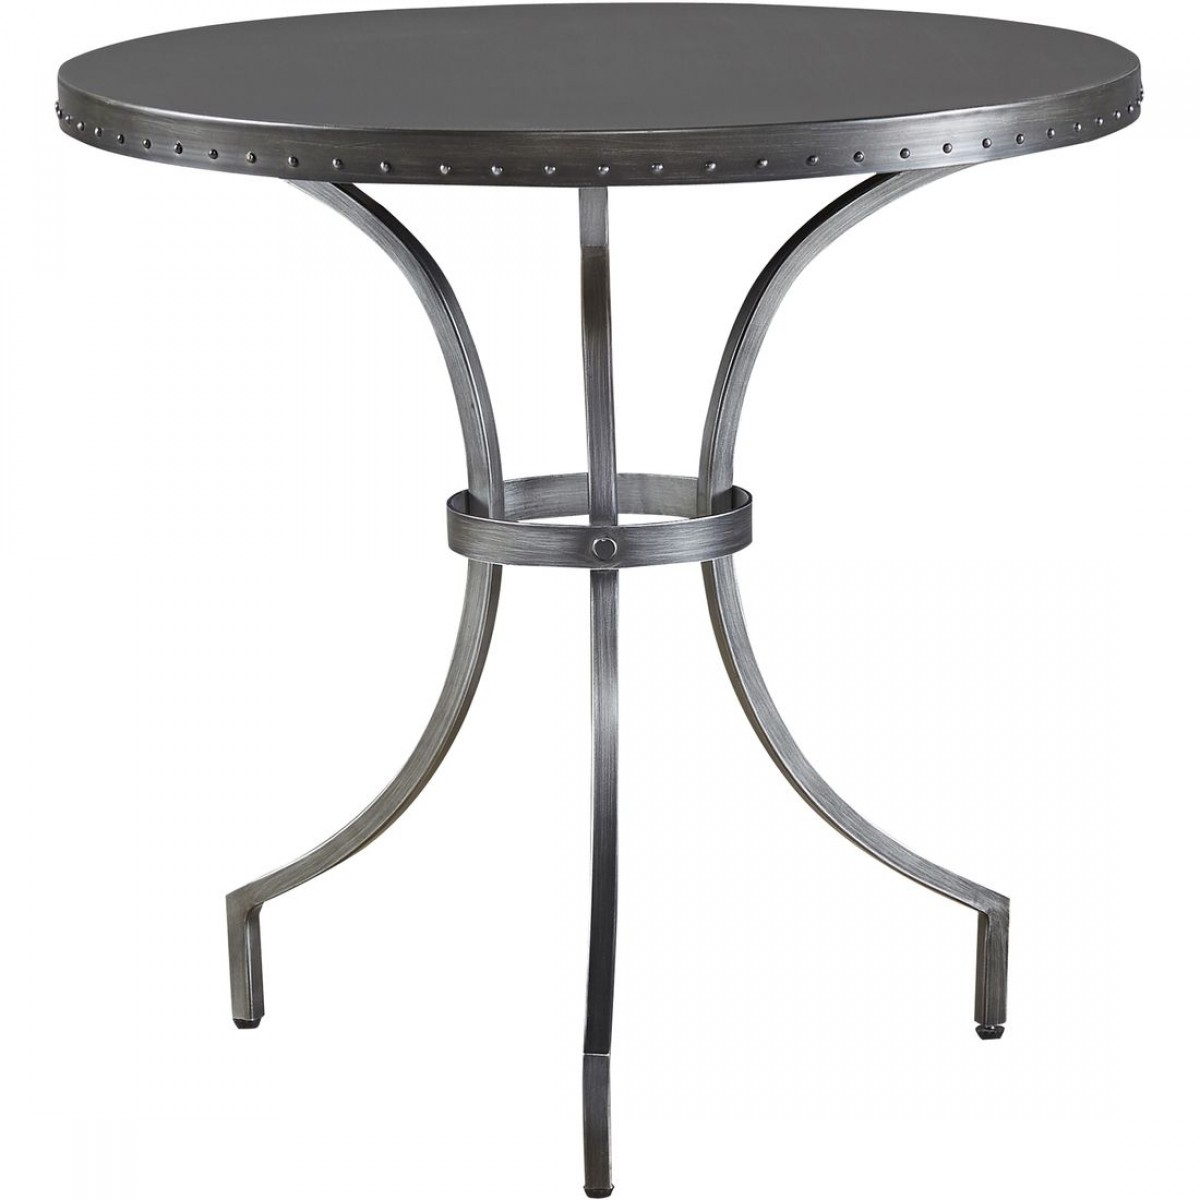 universal furniture curated eliston round end table oiled bronze tables indoor lighting kitchen top replacement mid century glass dining black pipe workbench solid steel dog crate